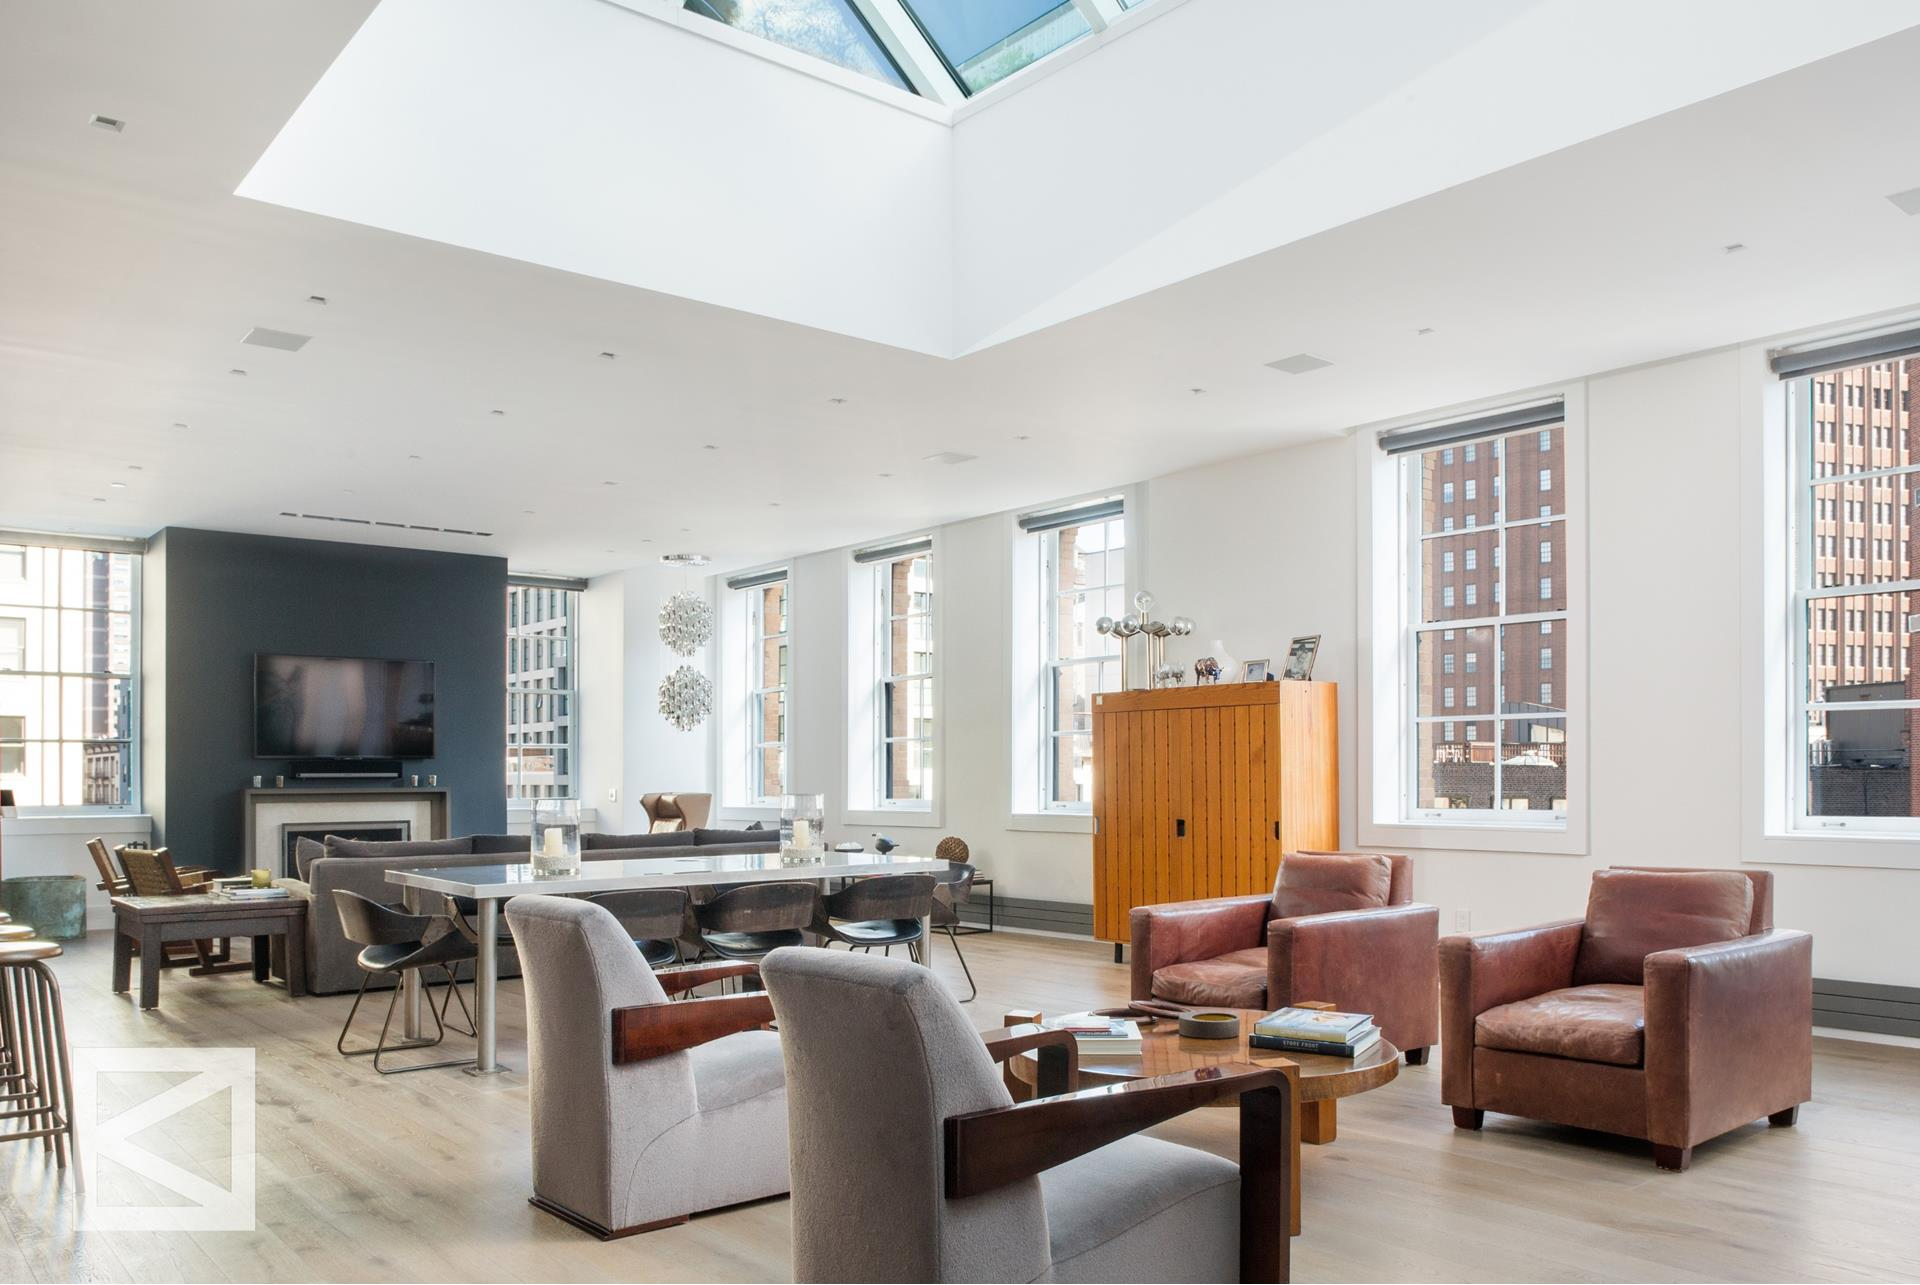 This rare and important pre-war loft condominium, built by Albert Wagner in 1887, offers 12 exclusive lofts. Encompassing the entire top 2 floors of this building. A premier penthouse offering 4 bedrooms (currently configured as a 3 bedroom) and is situated   in an ultra-discreet building that offers onsite staff and a full-time doorman.This loft spans over 4,000 sq ft feet of interior living that is intelligently designed and exceptionally renovated. A sophisticated private outdoor terrace that is just over 1,650   sq ft showcasing a fully landscaped layout to include: a grilling / cooking preparation setup, a separate private dining section, alongside a relaxed sun-filled lounging area. This exterior component provides room for entertainment with privacy and has magical   views of the New York City Skyline that stretches the entire West and Southern portion of Tribeca. Renovated to the highest standards by interior designer Robert Stilin, this modern custom home is sprawling, refined and understated. With 9 deep set windows   that span the entire length of this great room, tremendous light floods into the residence from all directions. A superb layout that is ideal for both grand entertaining and laid back living. All grounded by a real wood-burning fireplace that is set apart   by an immense architectural skylight that sits high above this duplex loft. The chef-level kitchen is impeccable, and located right off the great room. A preparation station that is in excess of 15 feet, complimented by French custom stone countertops and   custom waxed oak cabinetry by RJ Millwork with hand crafted wrought iron detailing is truly stunning. This kitchen is fully equipped and outfitted with 3 dishwashers, a wine refrigeration system that holds 150 bottles, a Wolf oven, a Miele built in coffee   machine alongside a 48 inch Sub-Zero refrigeration system.     There are three well-proportioned bedrooms located off the great room that are complimented by windowed en-suite bathro